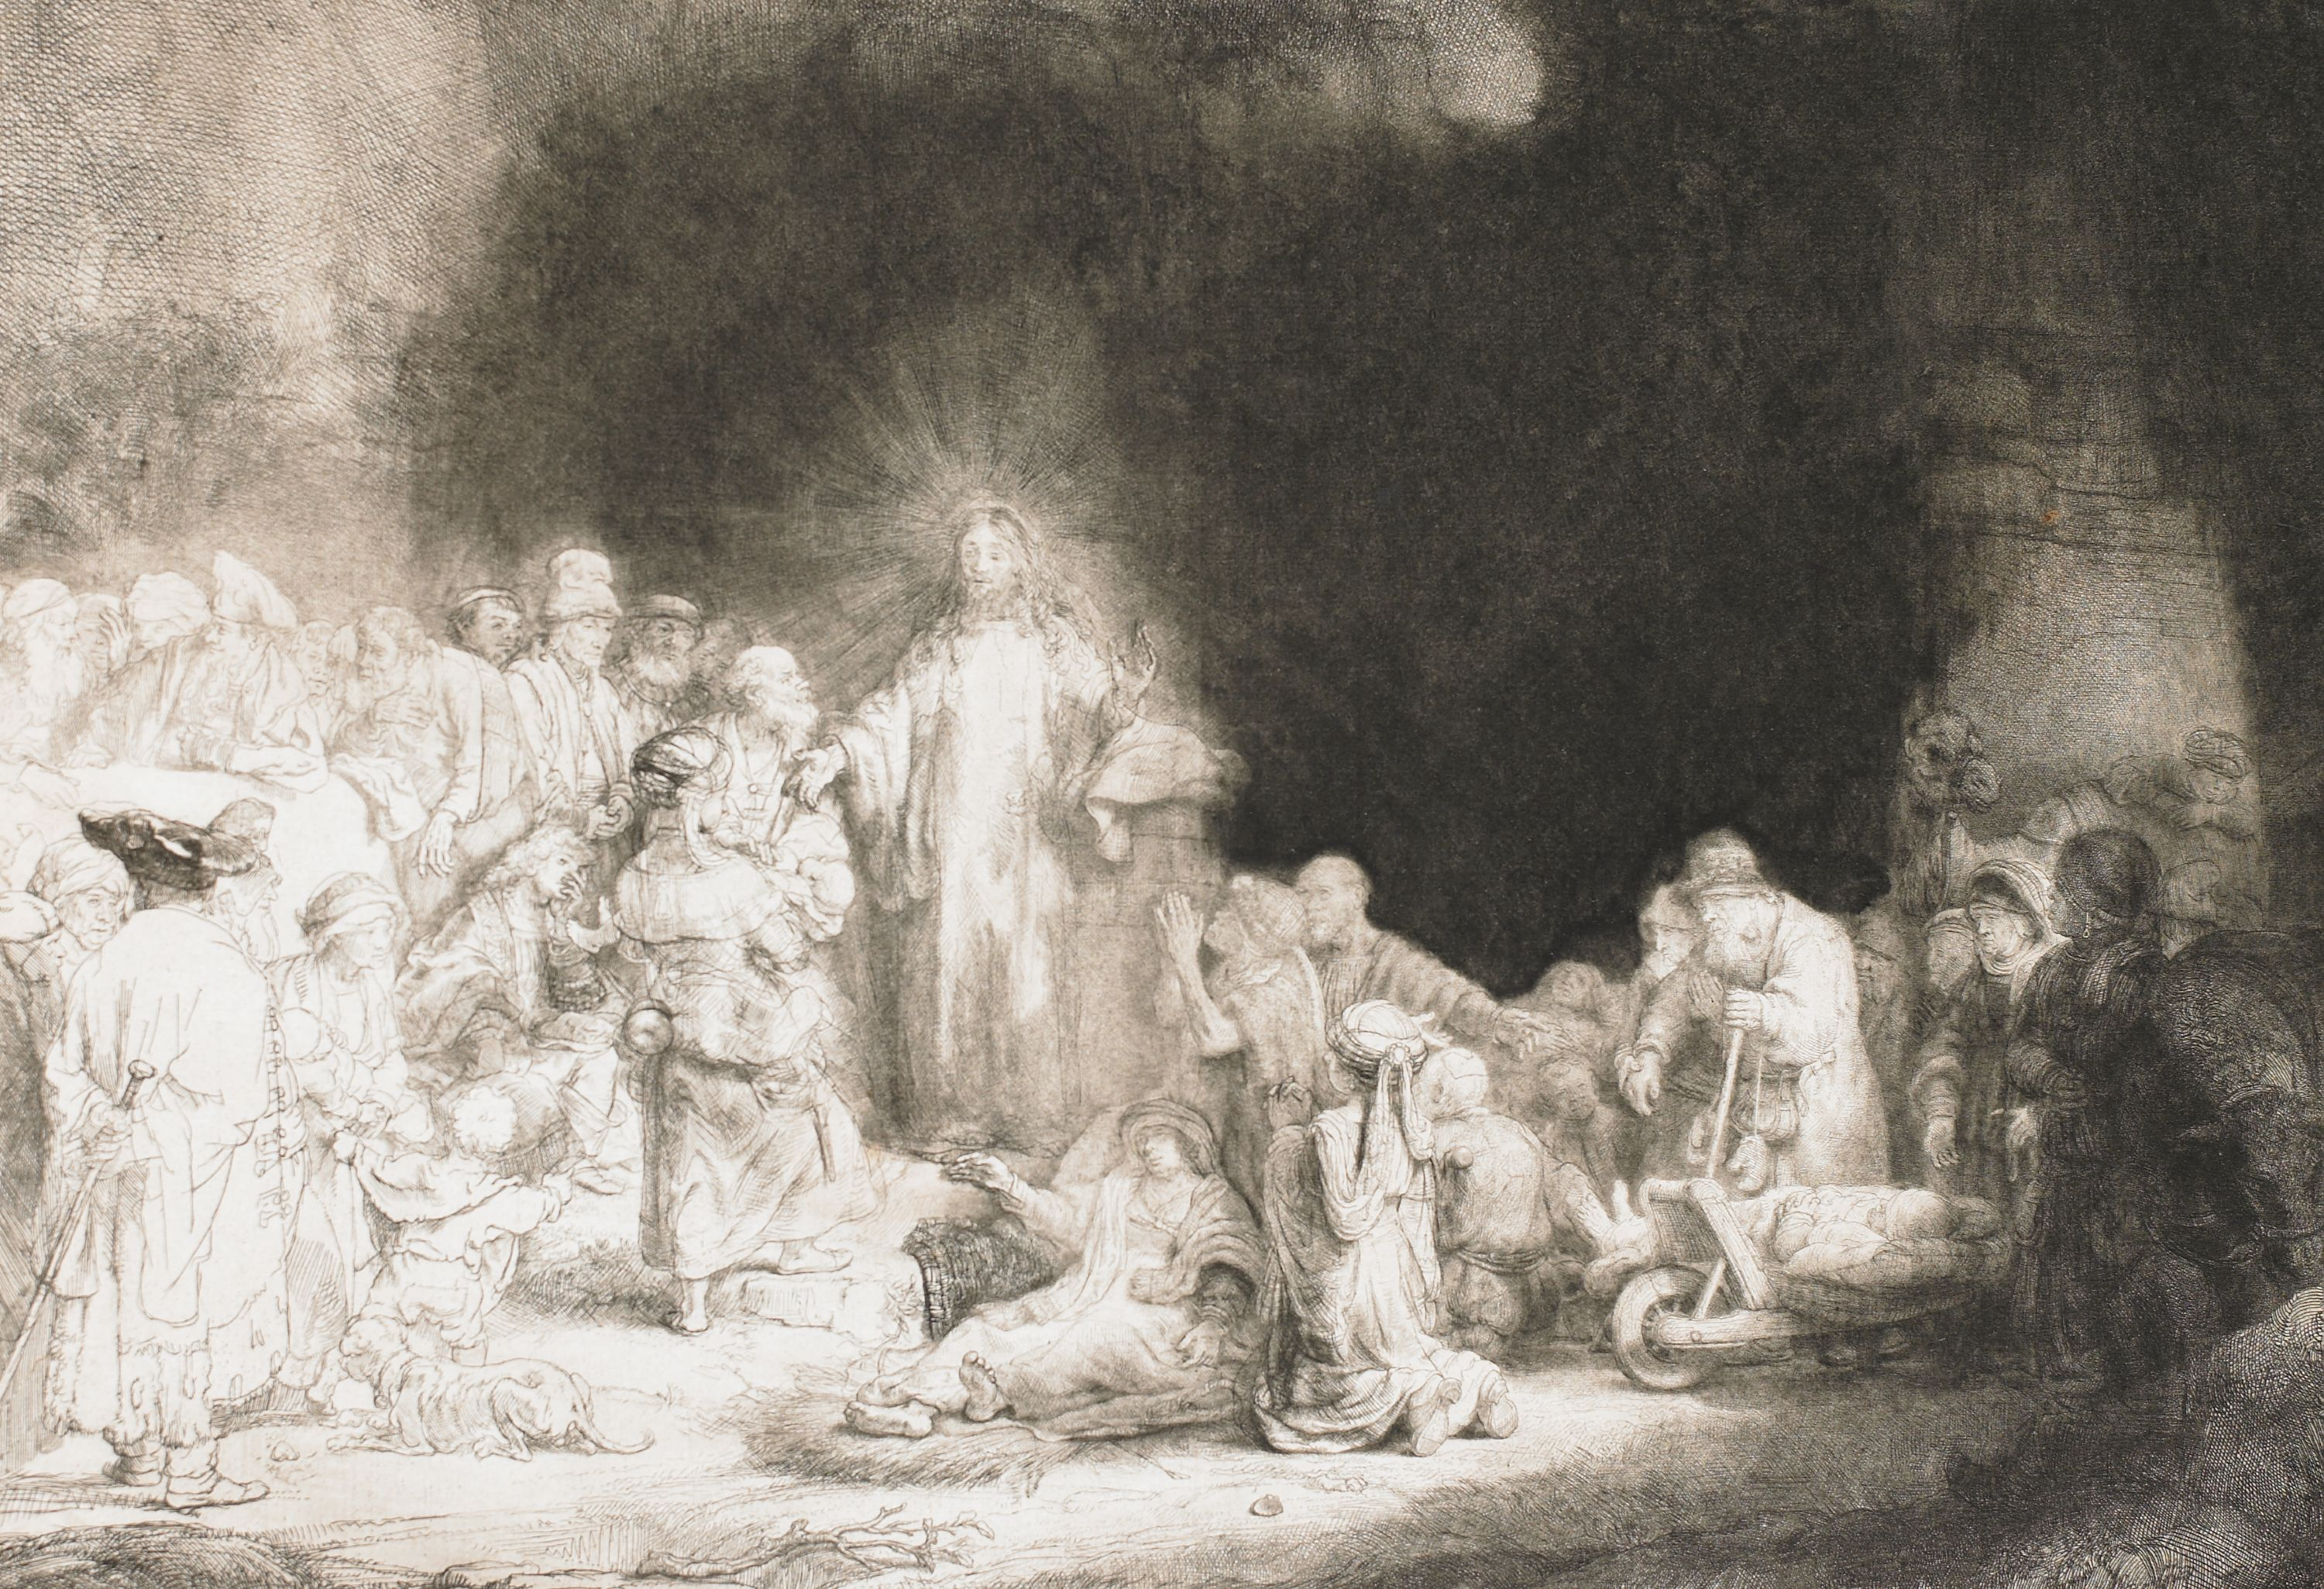 """Christ Healing the Sick (The Hundred Guilder Print)"" Rembrandt van Rijn (Netherlands, 1606-1669), etching, drying, and burin (state 2 of 2). Print. 56.2003."